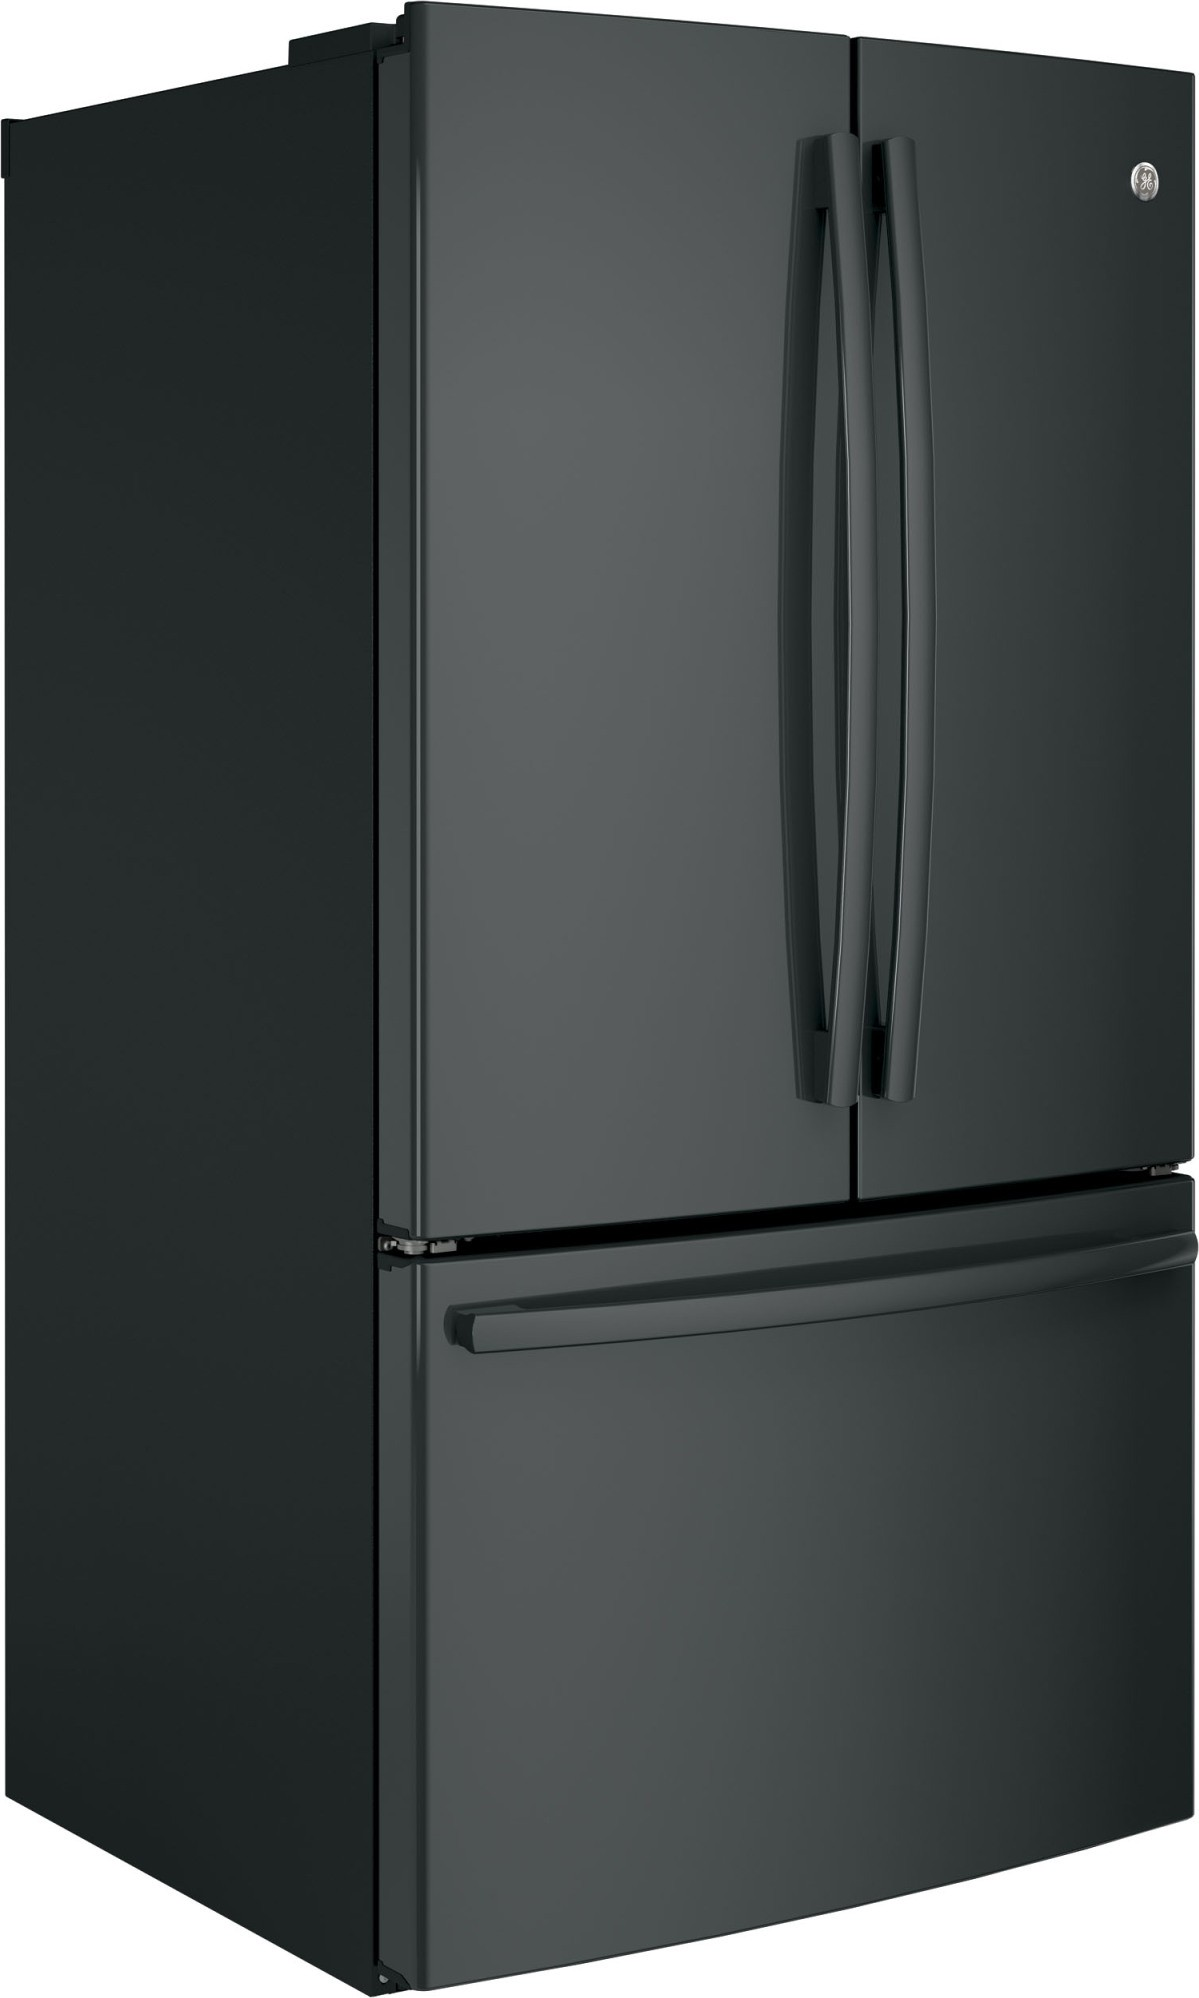 Gne29ggkbb Ge 36 Quot Energy Star French Door Refrigerator